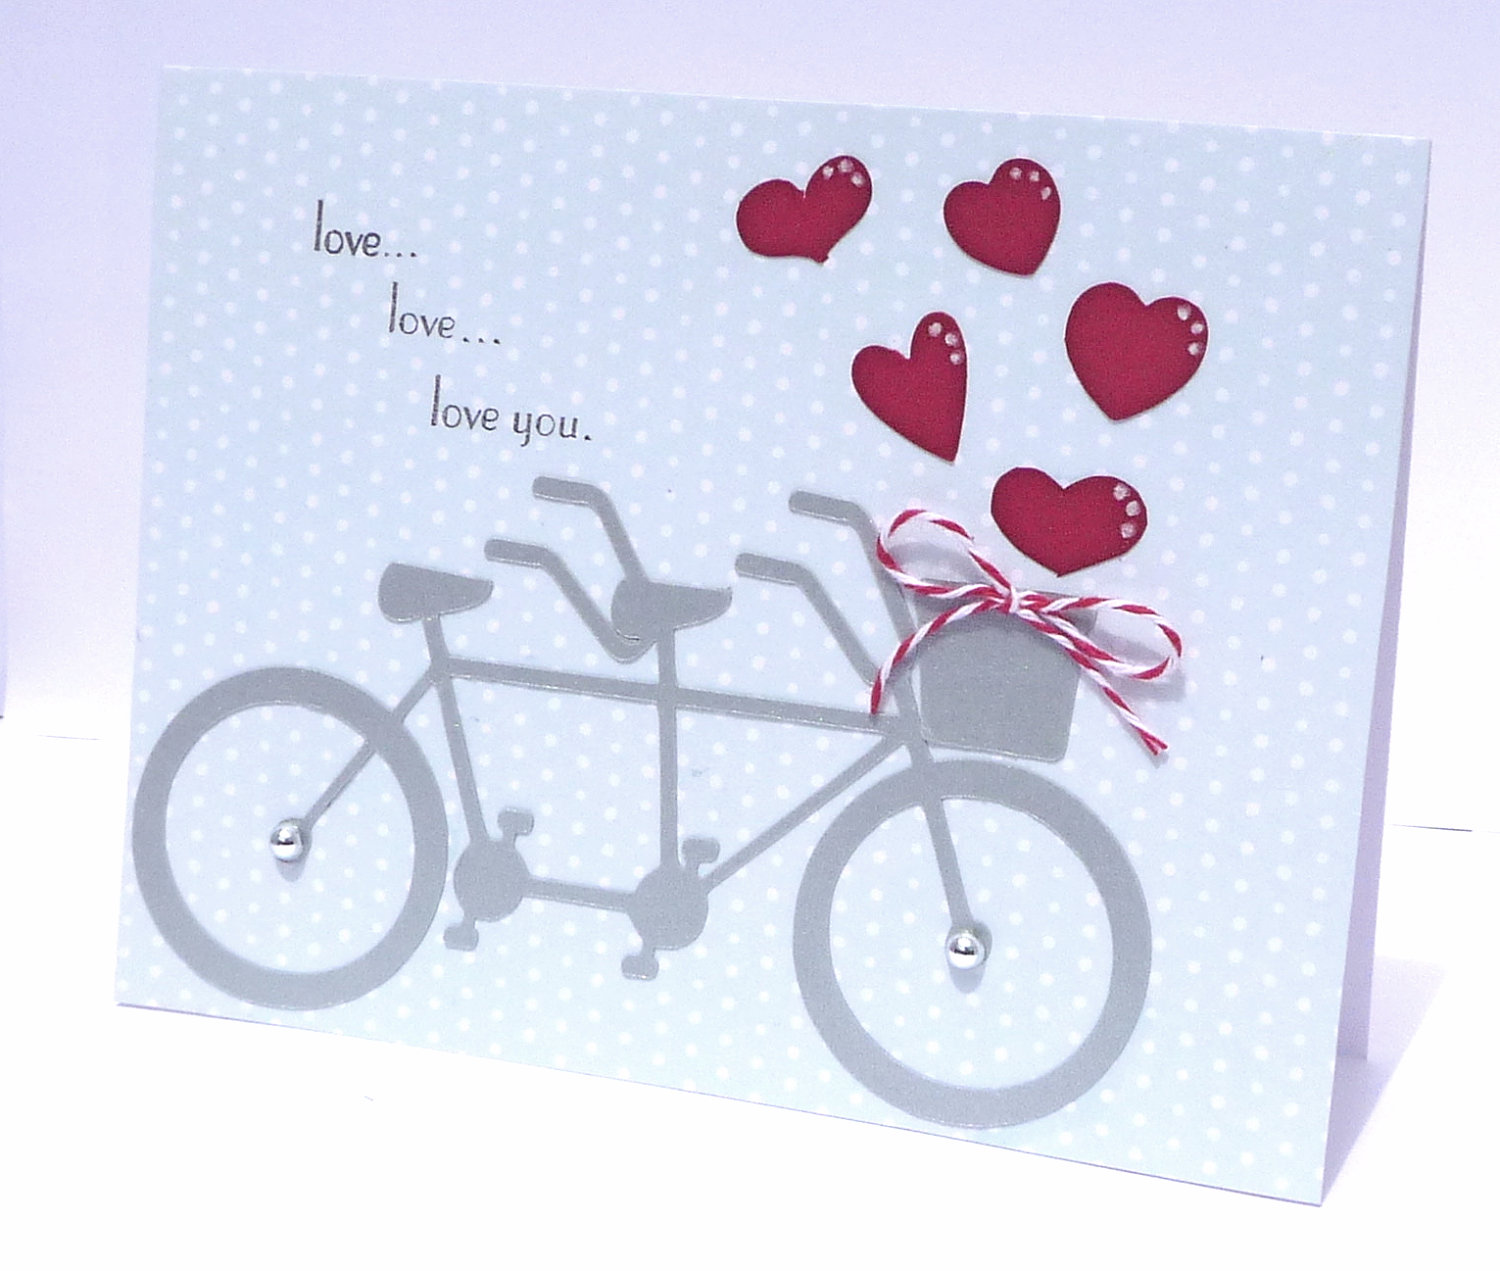 I love you greeting cards for girlfriend i love you greeting cards for girlfriend 2013 kristyandbryce Image collections